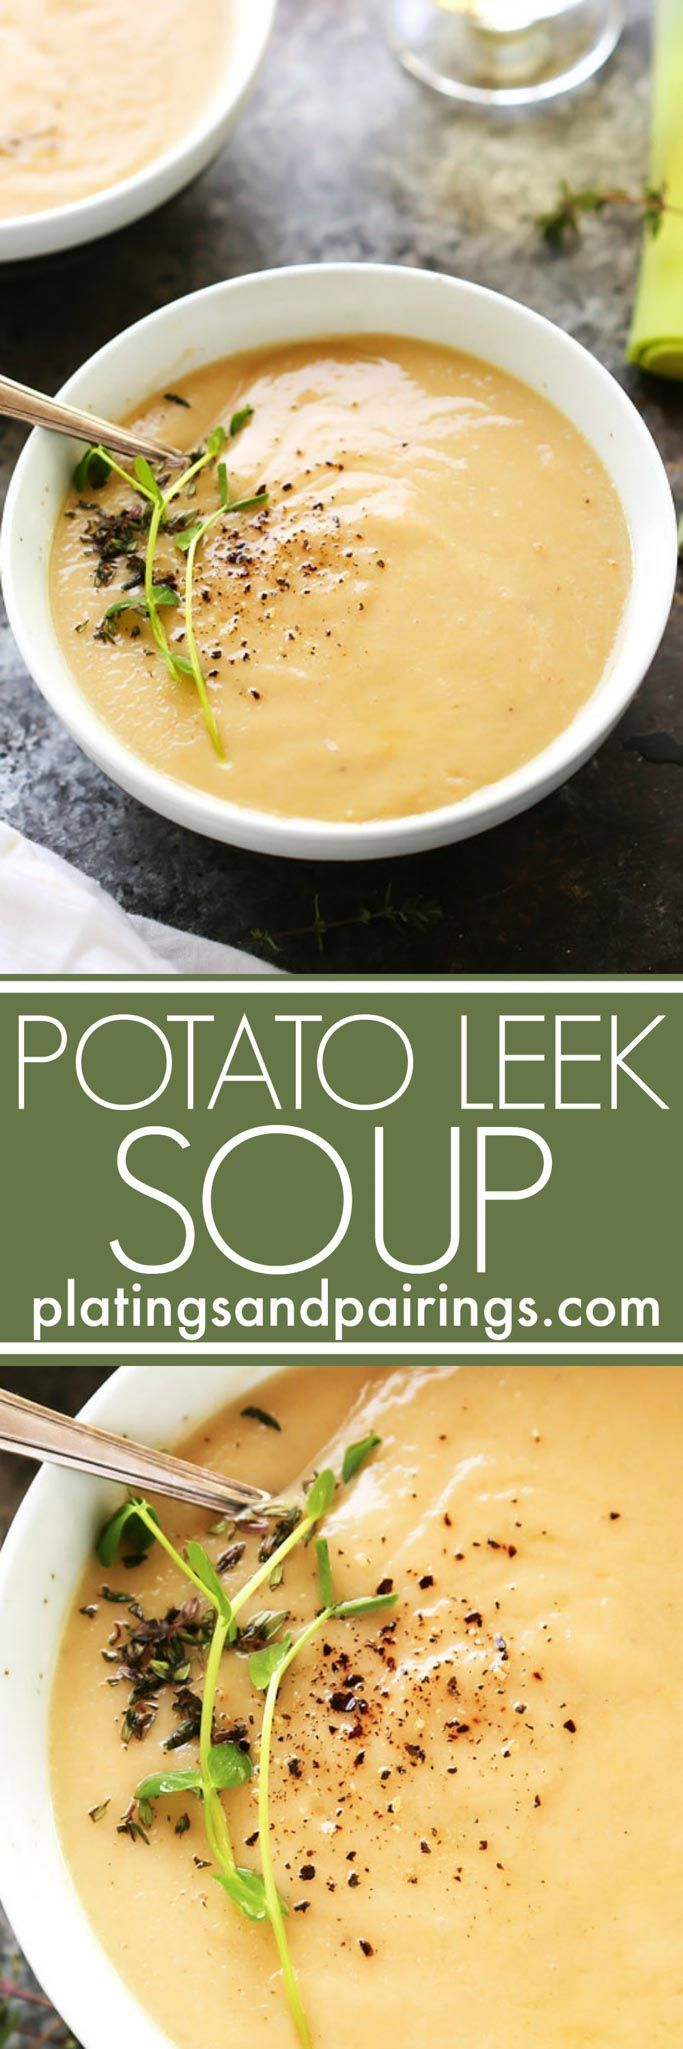 This Healthier Creamy Potato Leek Soup uses fat-free Greek yogurt instead of heavy cream and doesn't skimp on the flavor! Shallots, saffron and cayenne are all used to spice up this creamy soup. | platingsandpairings.com